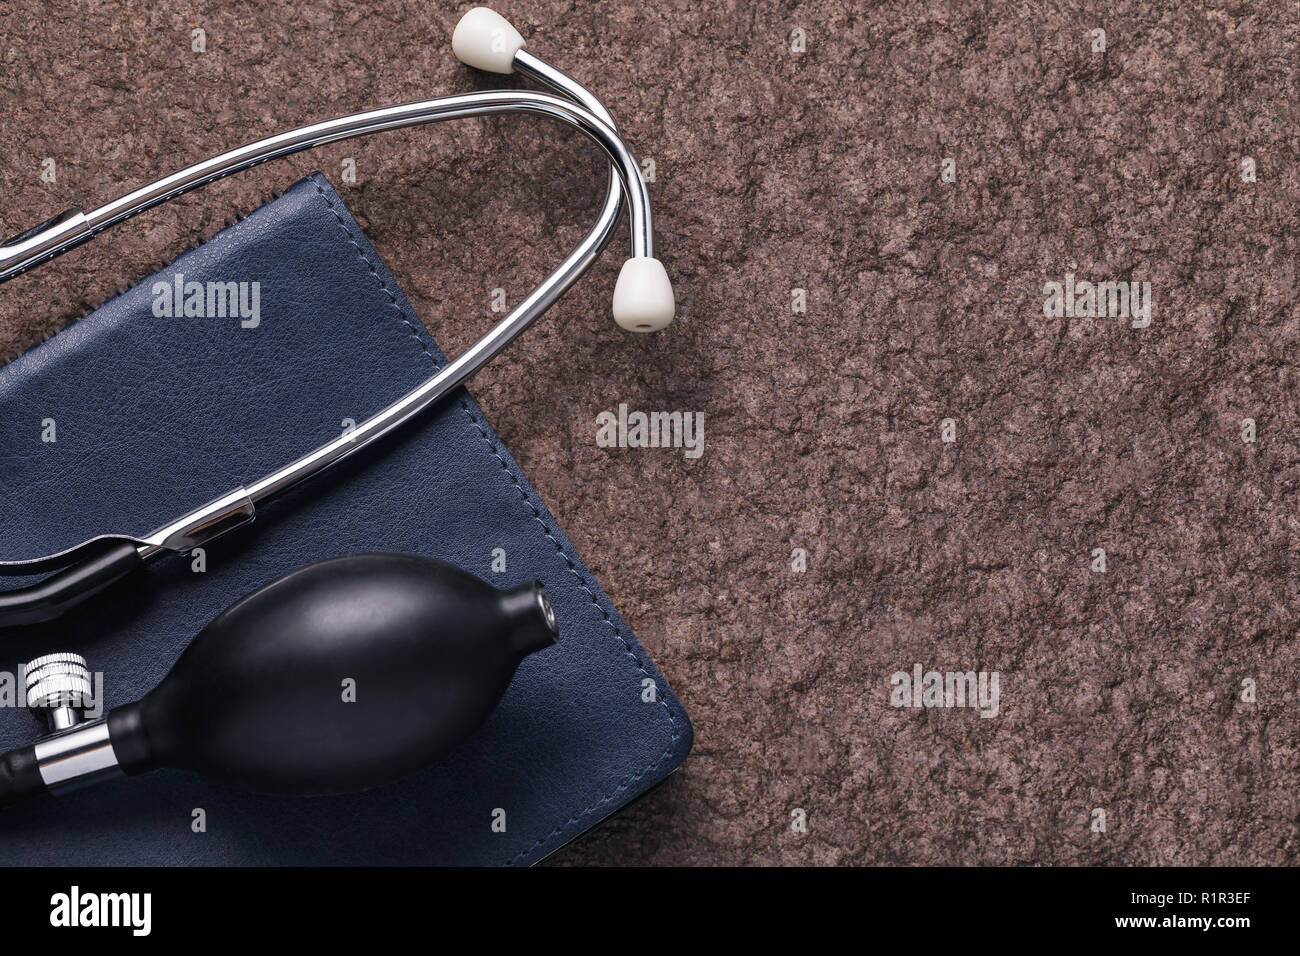 Medical instruments on a stone surface with copy space - Stock Image